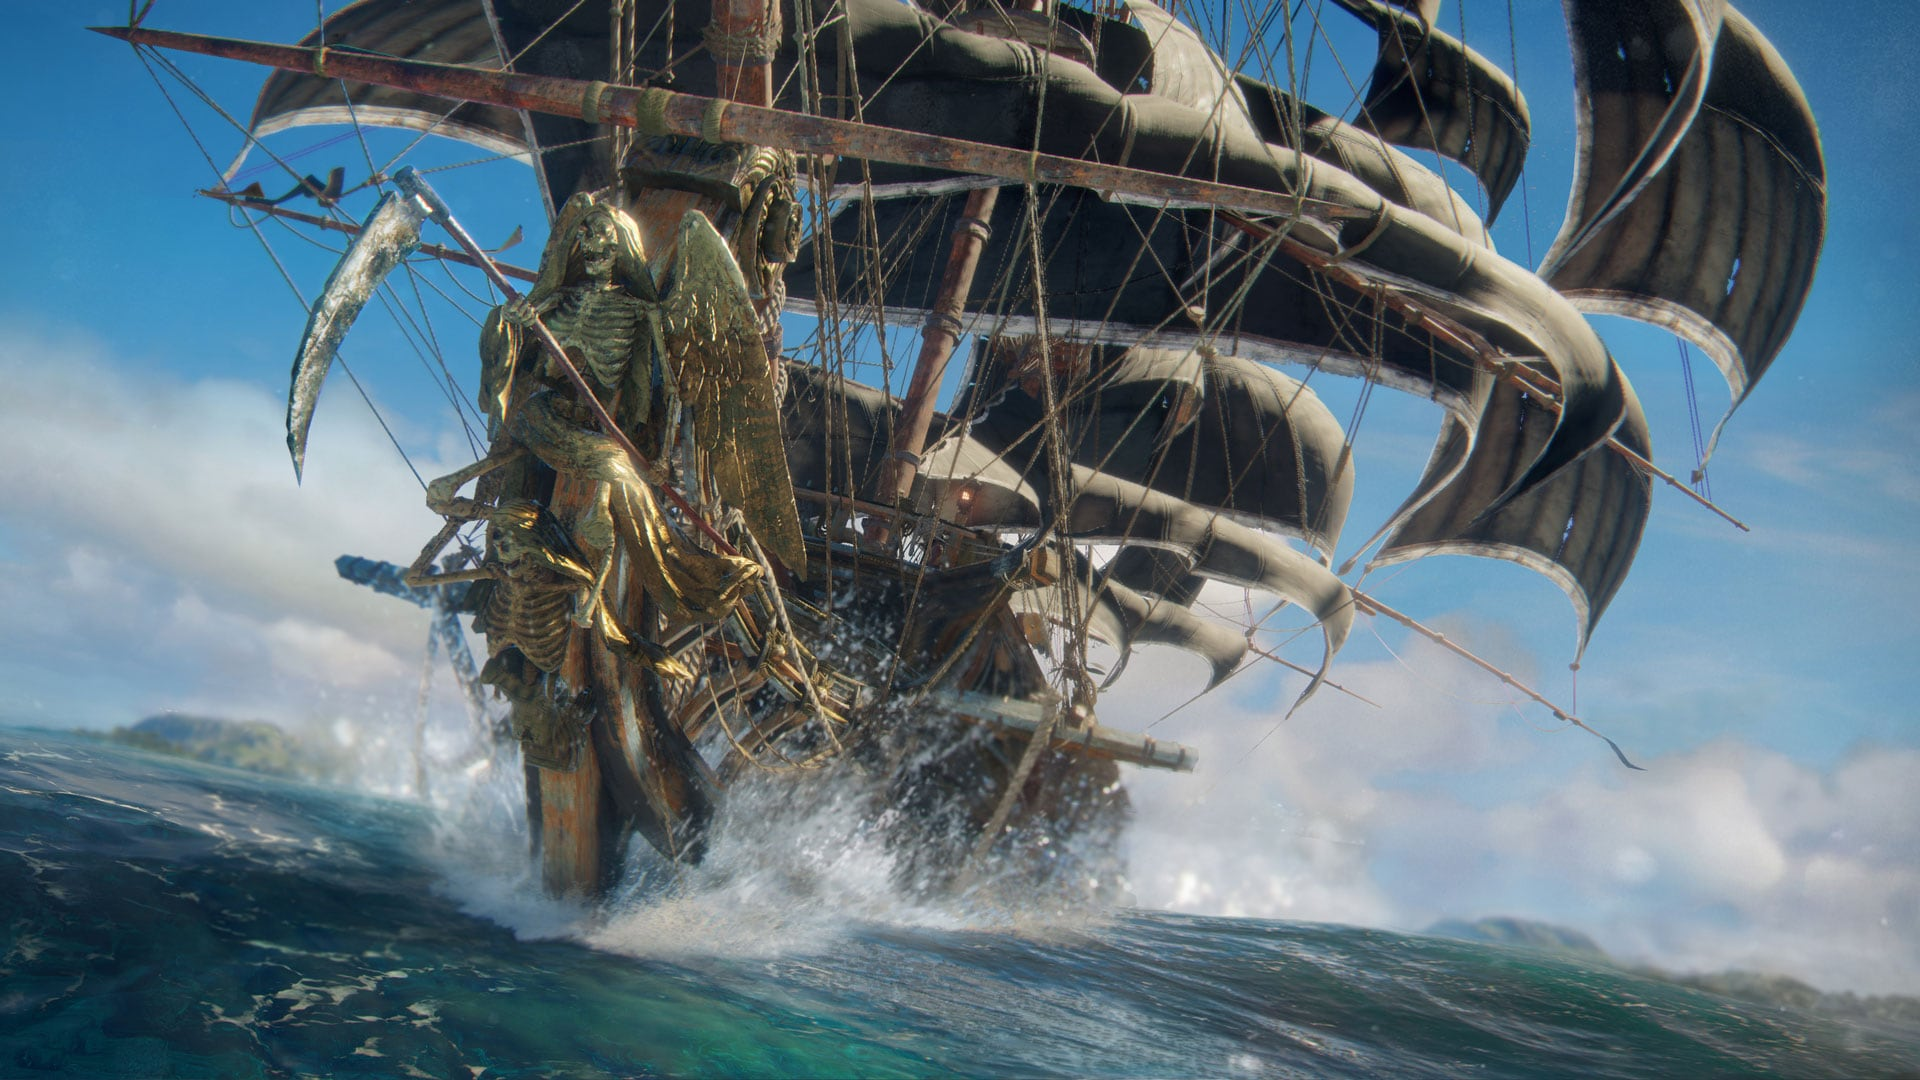 Skull And Bones 2018 Video Game 4k Hd Desktop Wallpaper: Skull And Bones